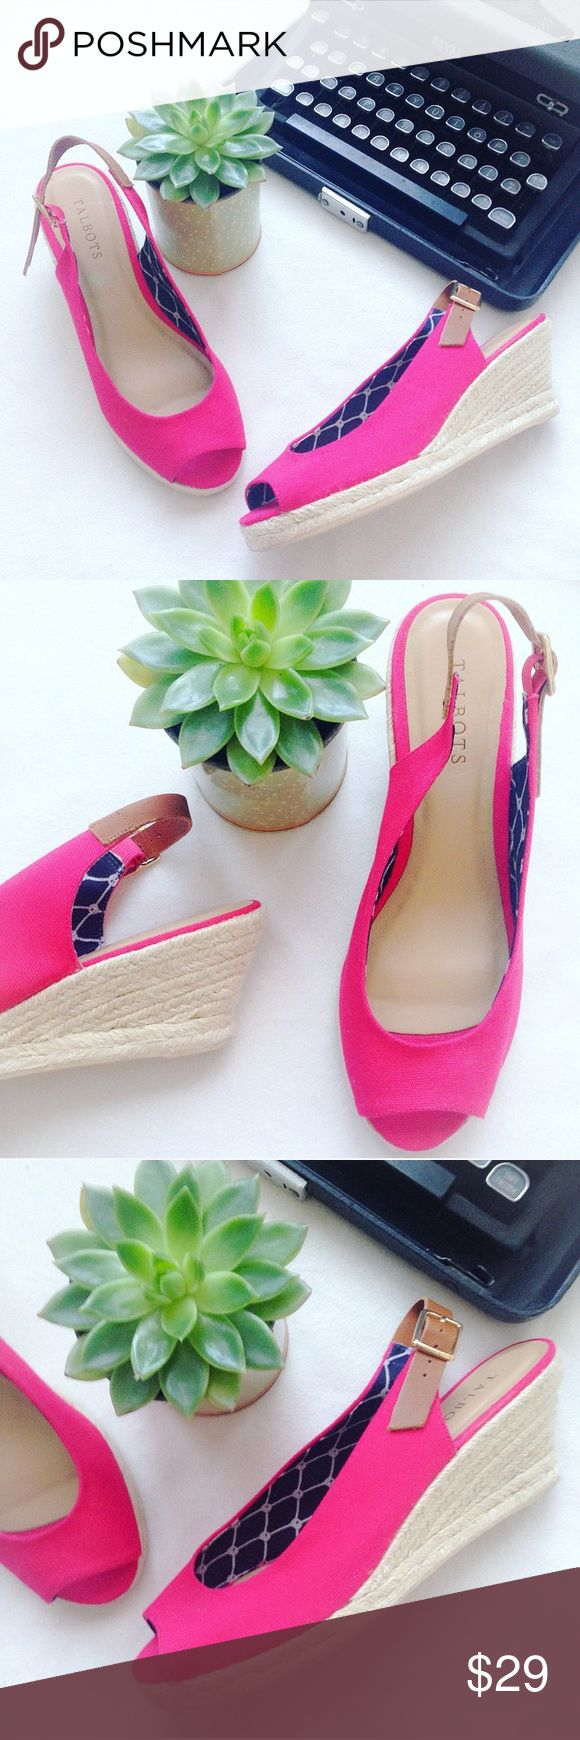 NWOT Talbots Pink Espadrille Wedges These incredibly adorable and stylish NWOT pink espadrille wedges from Talbots are perfect for your upcoming Spring wardrobe! Pink canvas, with a lovely navy blue inside print detailing! So comfortable! These are NWOT NEVER WORN! Perfect condition! ✨ALL PURCHASES COME WITH LOVELY FREE GIFTS✨ Talbots Shoes Espadrilles